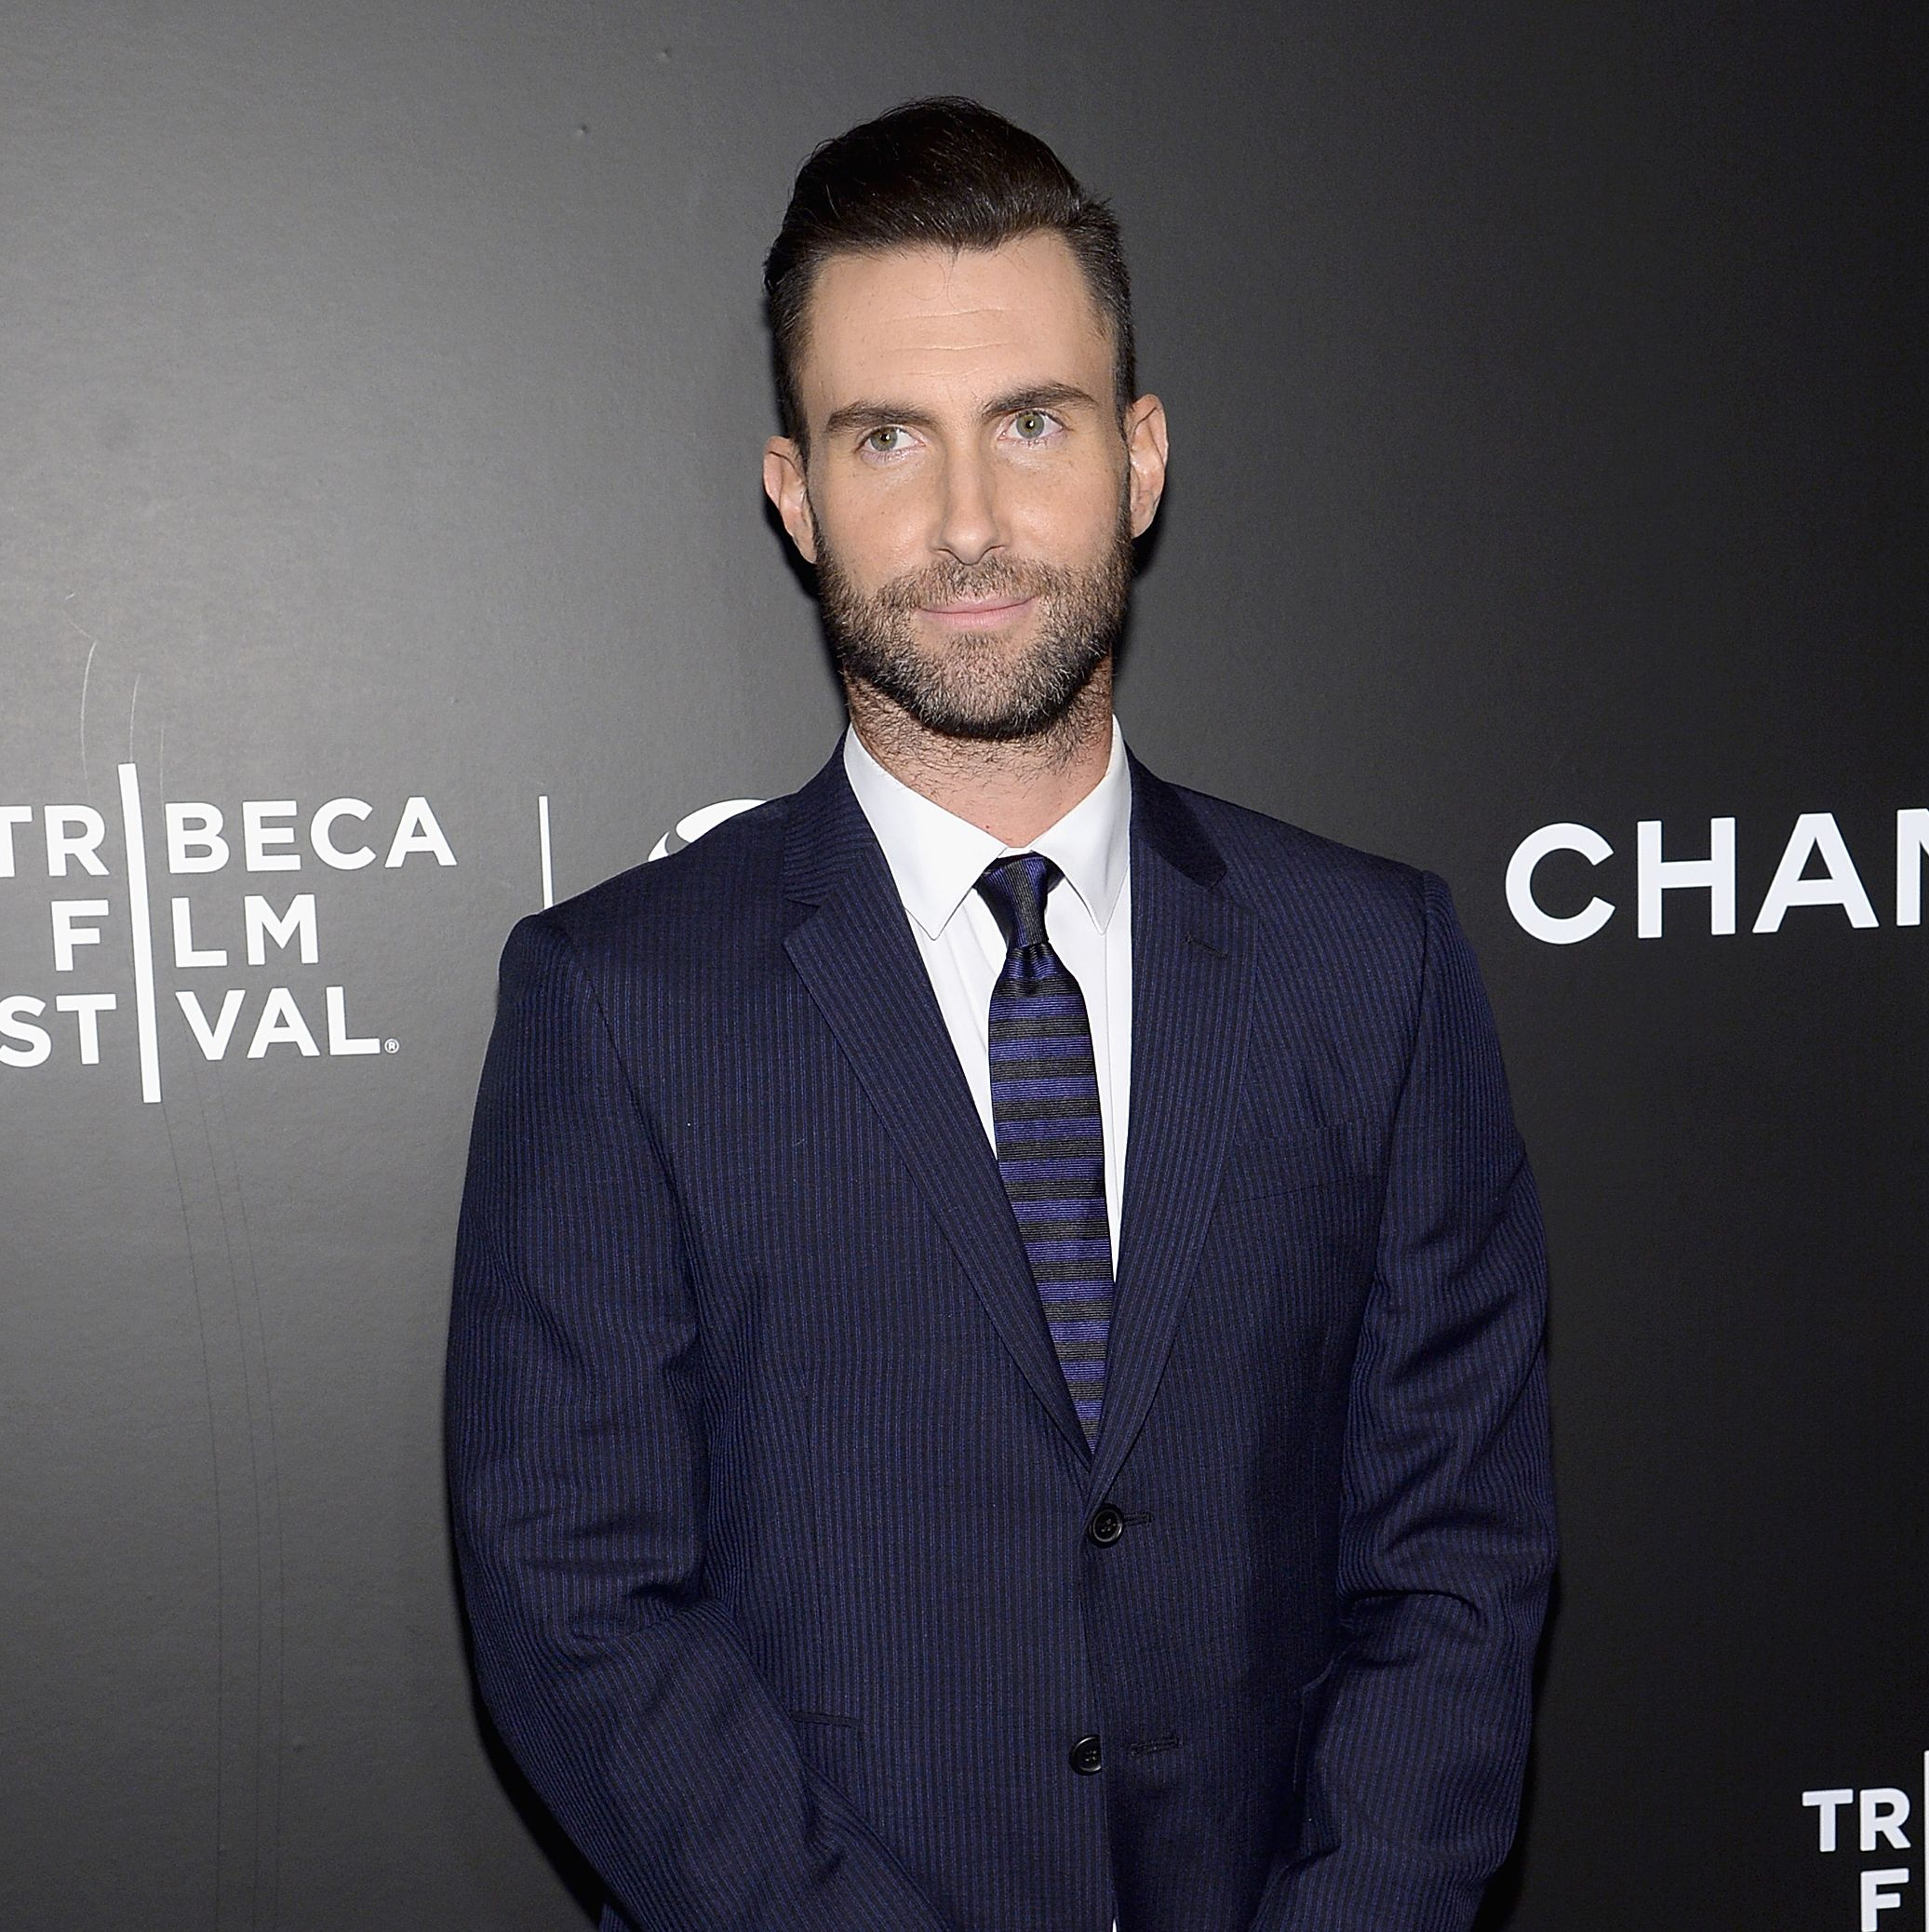 The Voice US undergoes huge shake-up as original coach Adam Levine quits after 8 years